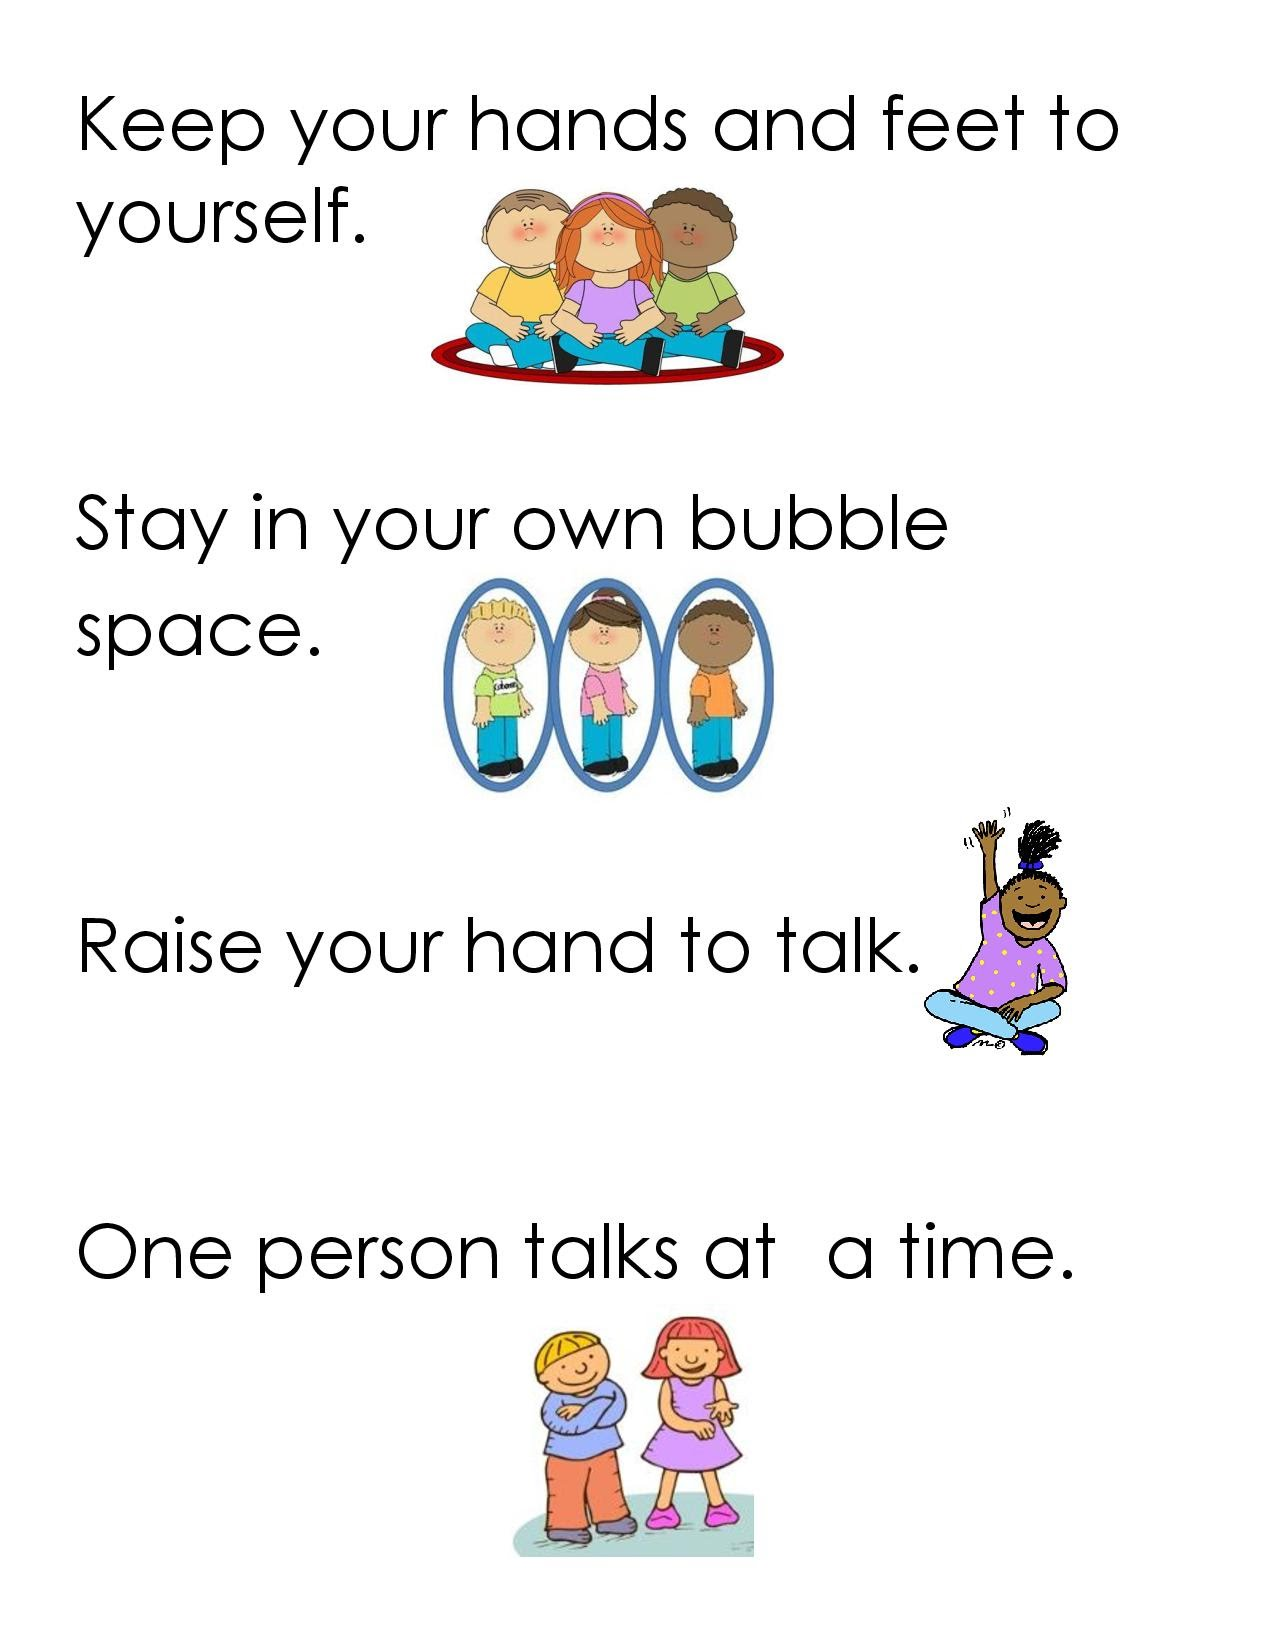 Keep your hands and feet to yourself. Stay on your own bubble space.  Raise your hand to talk.  One person talks at a time.